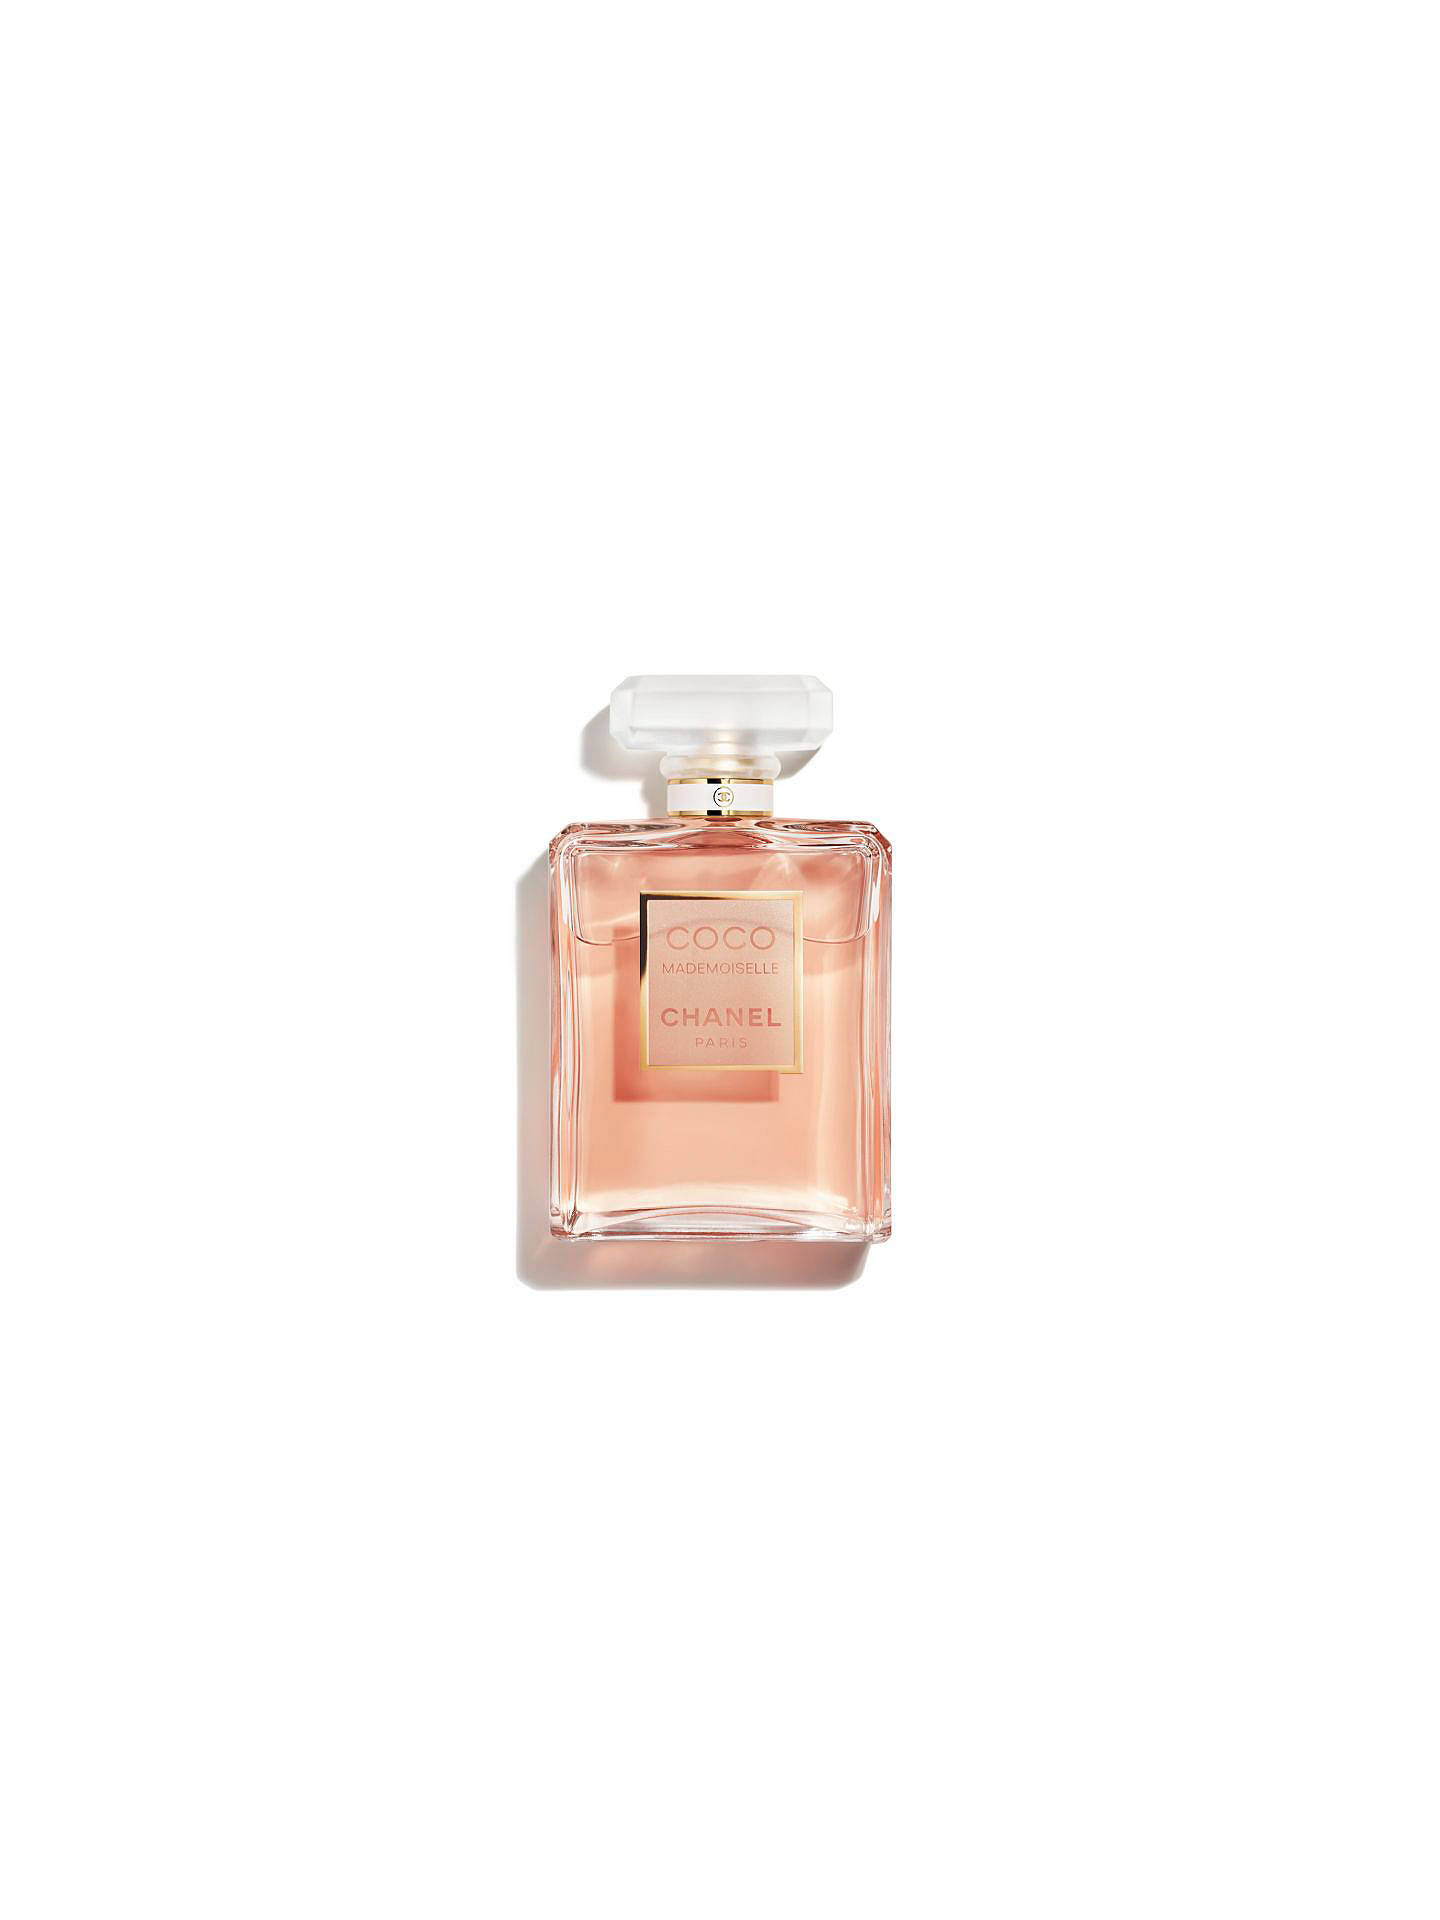 Chanel Coco Mademoiselle Eau De Parfum Spray At John Lewis Partners